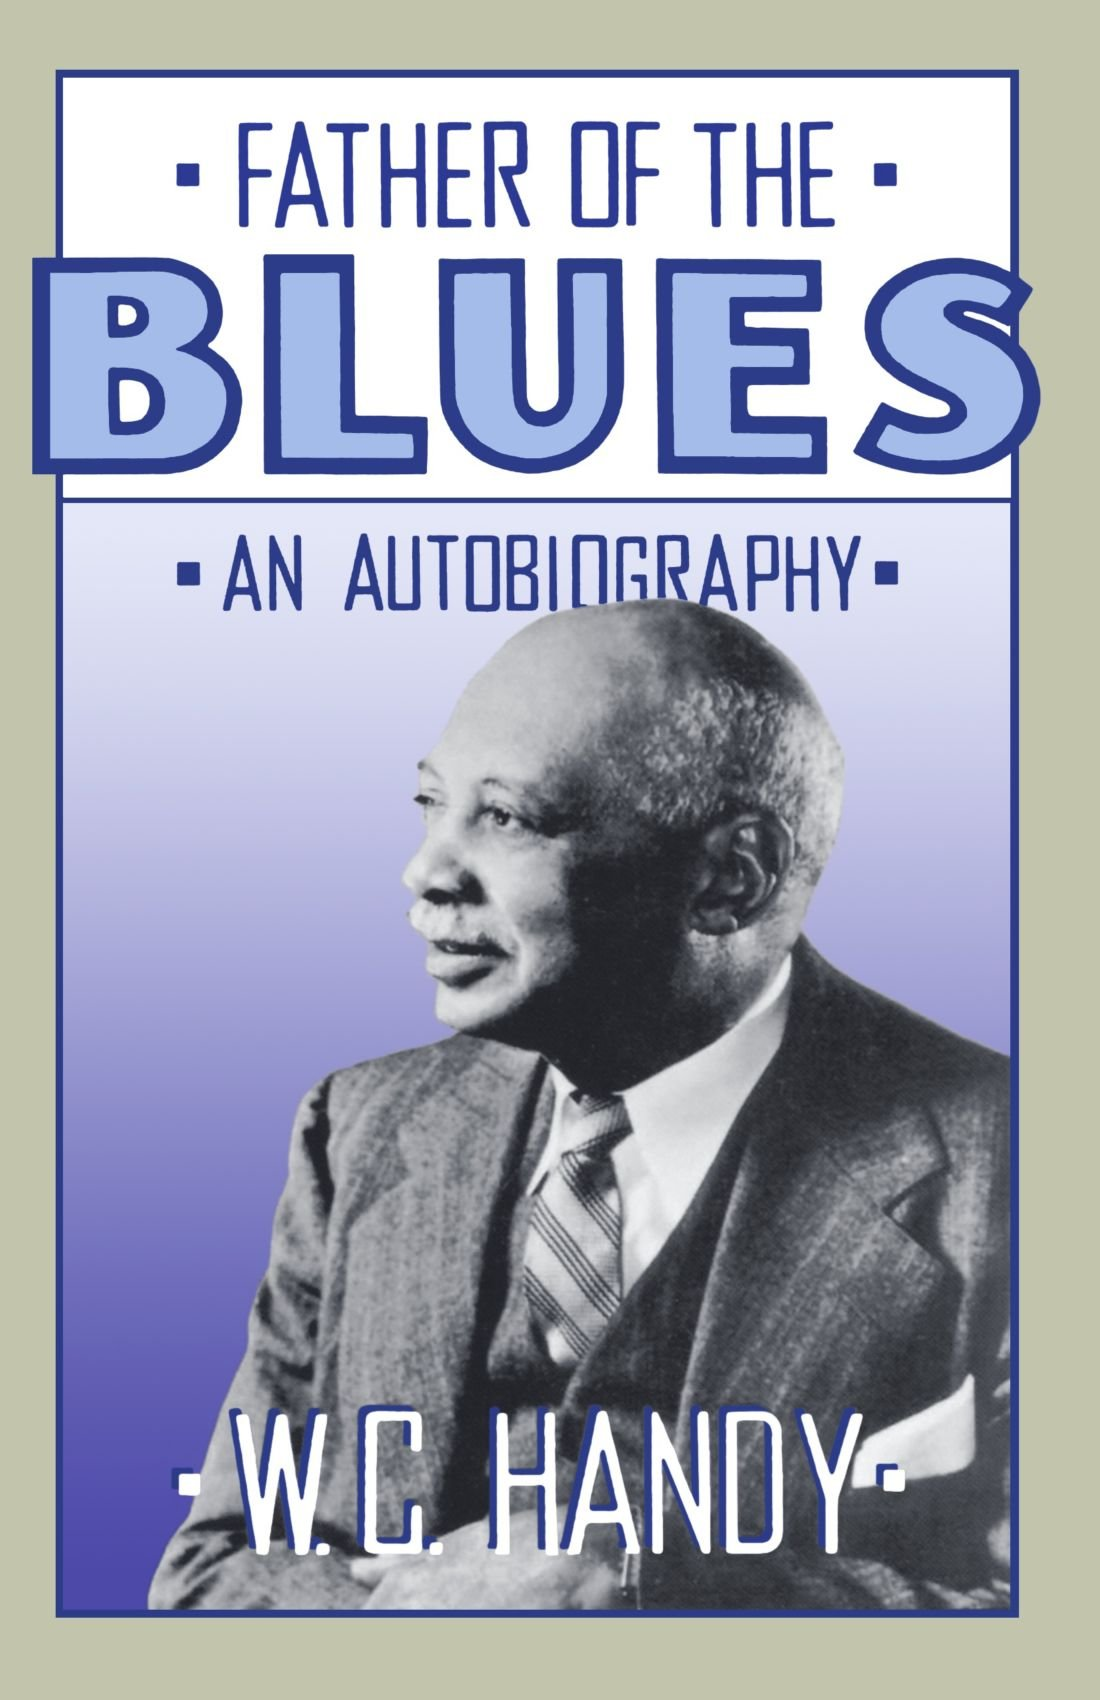 Father of the Blues: An Autobiography (Da Capo Paperback)